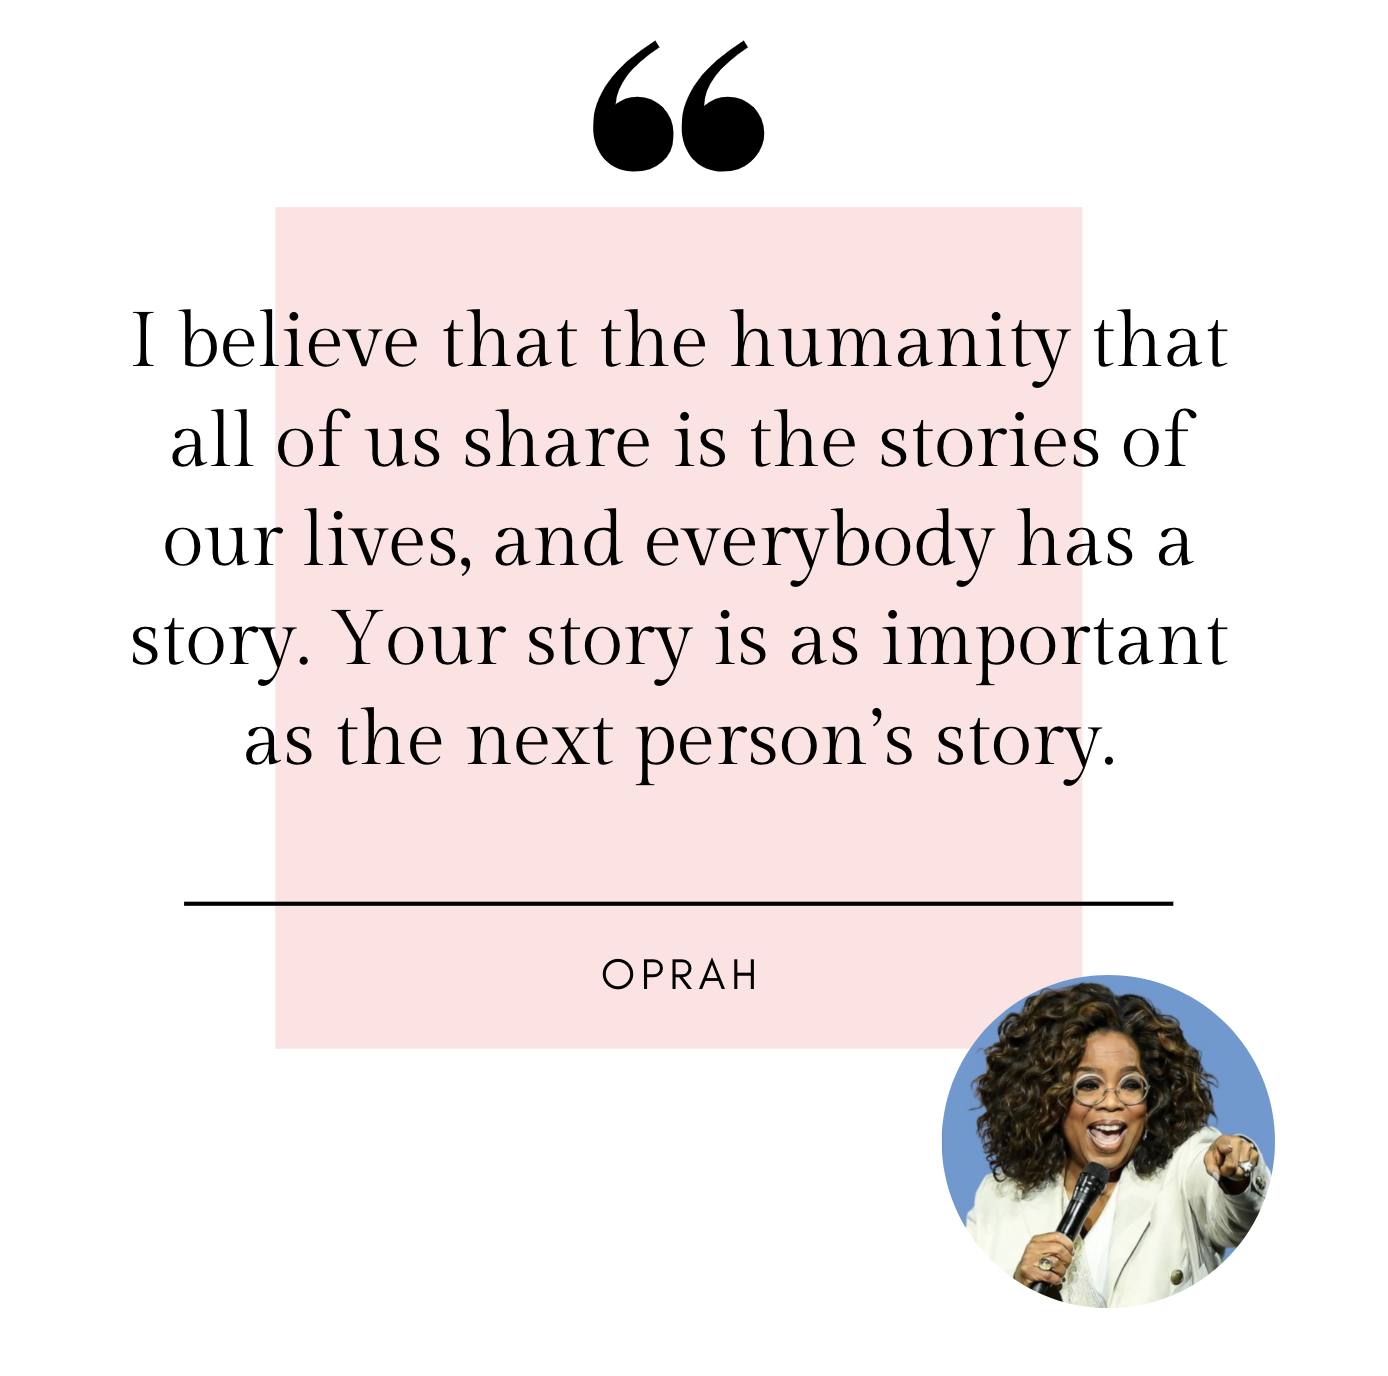 Oprah: I believe that the humanity that all of us share is the stories of our lives, and everybody has a story.